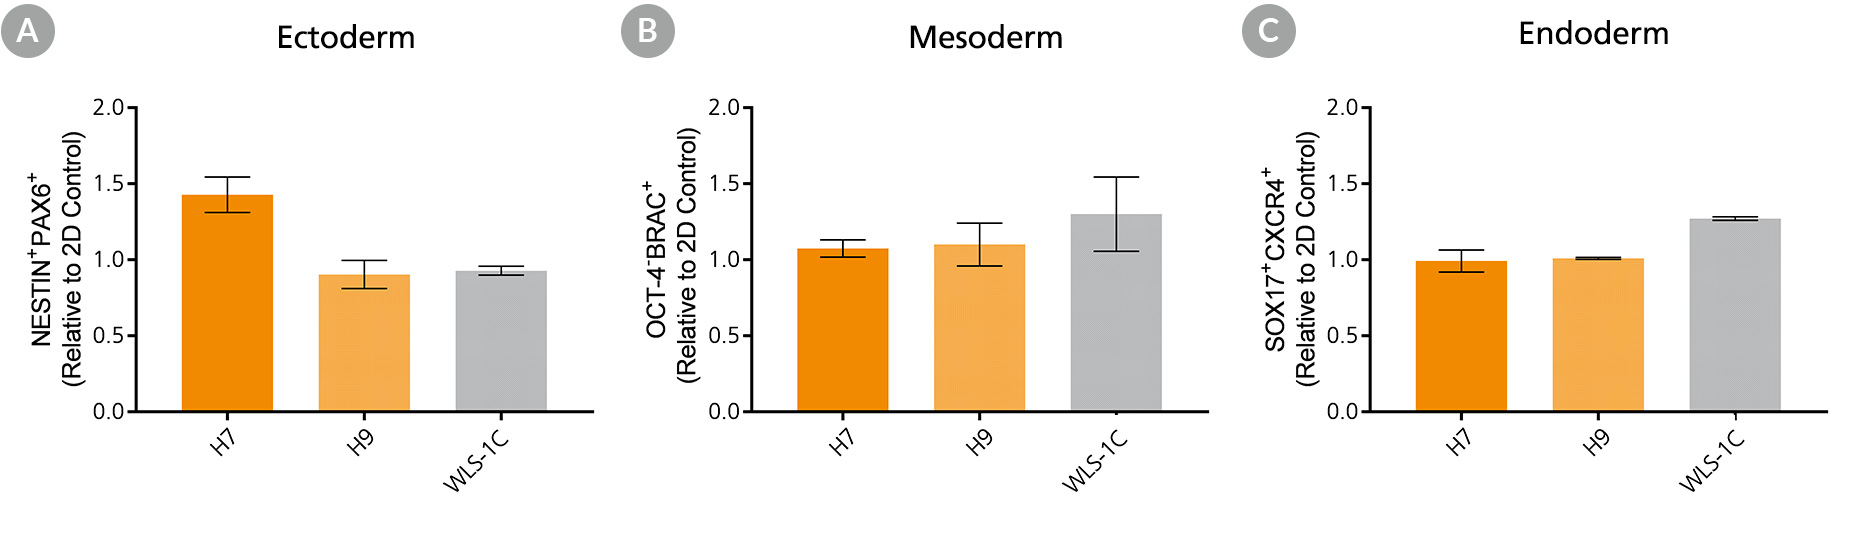 Expression of lineage-specific markers measured in ectoderm, mesoderm, and endoderm differentiated from human ES and iPS cells cultured in TeSR™-E8™3D suspension culture.